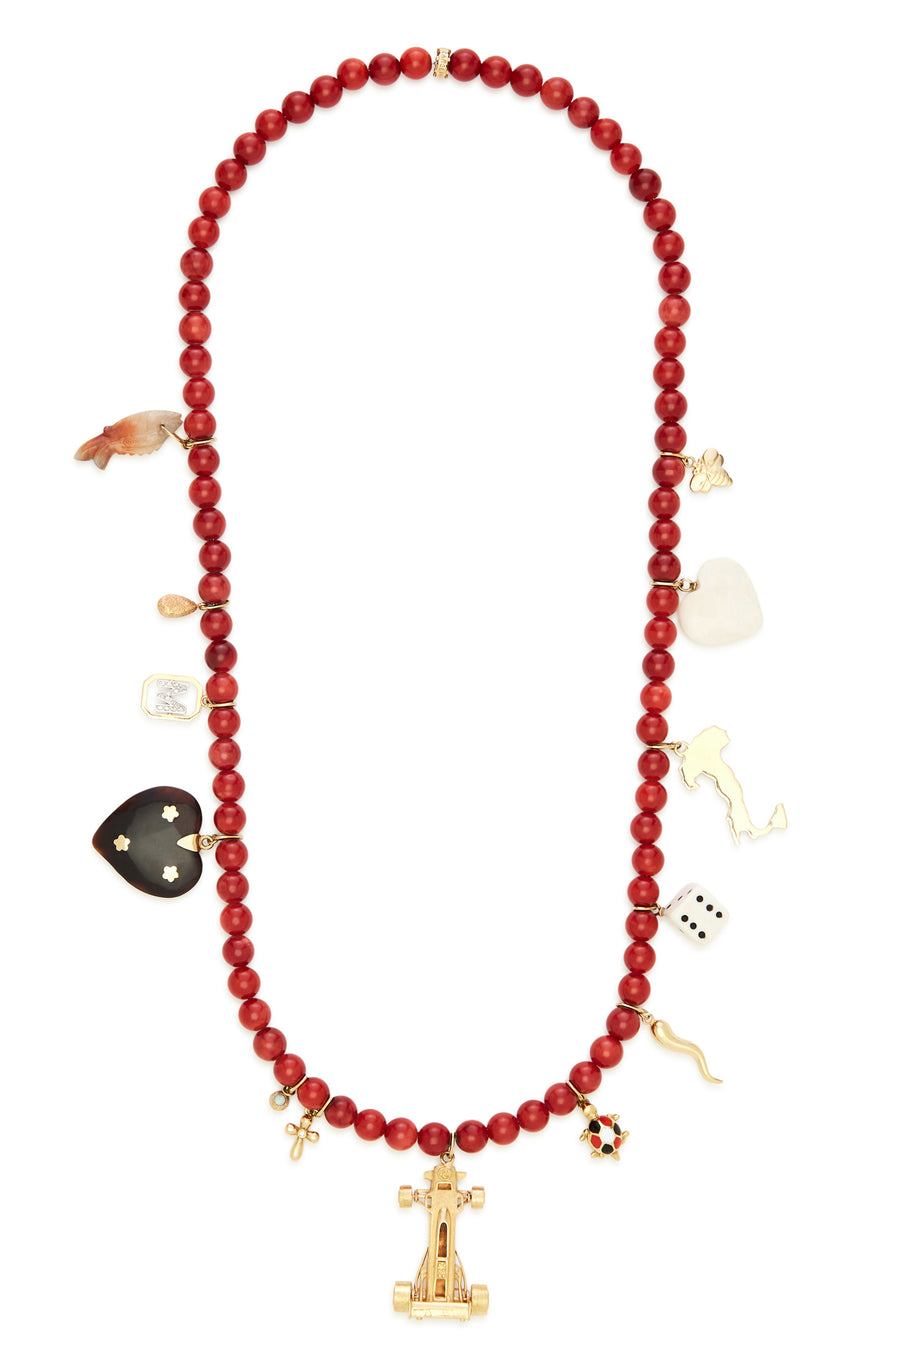 18K Gold and Red Isid Stone Lotus Race Car Recharmed Necklace